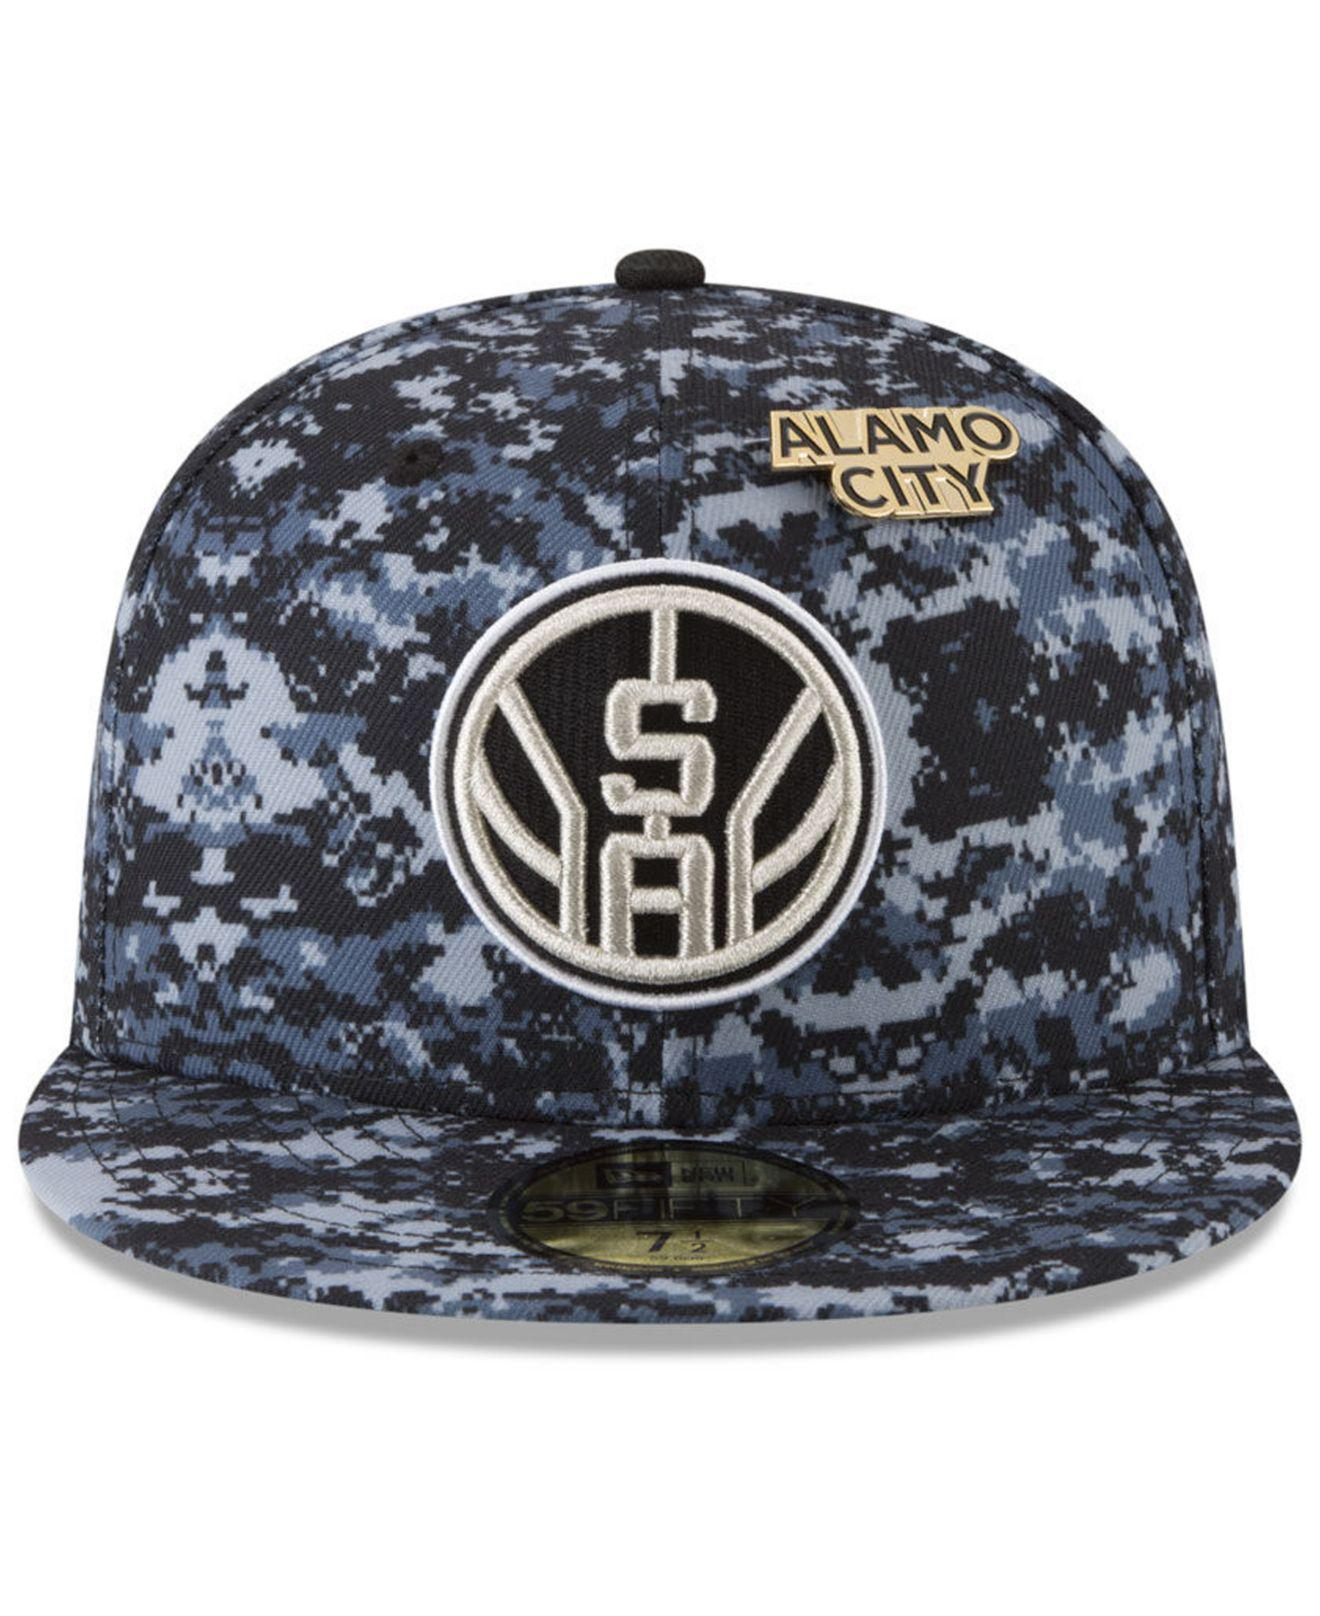 huge selection of dc336 0adf9 Lyst - KTZ San Antonio Spurs City On-court 59fifty Fitted Cap in Blue for  Men